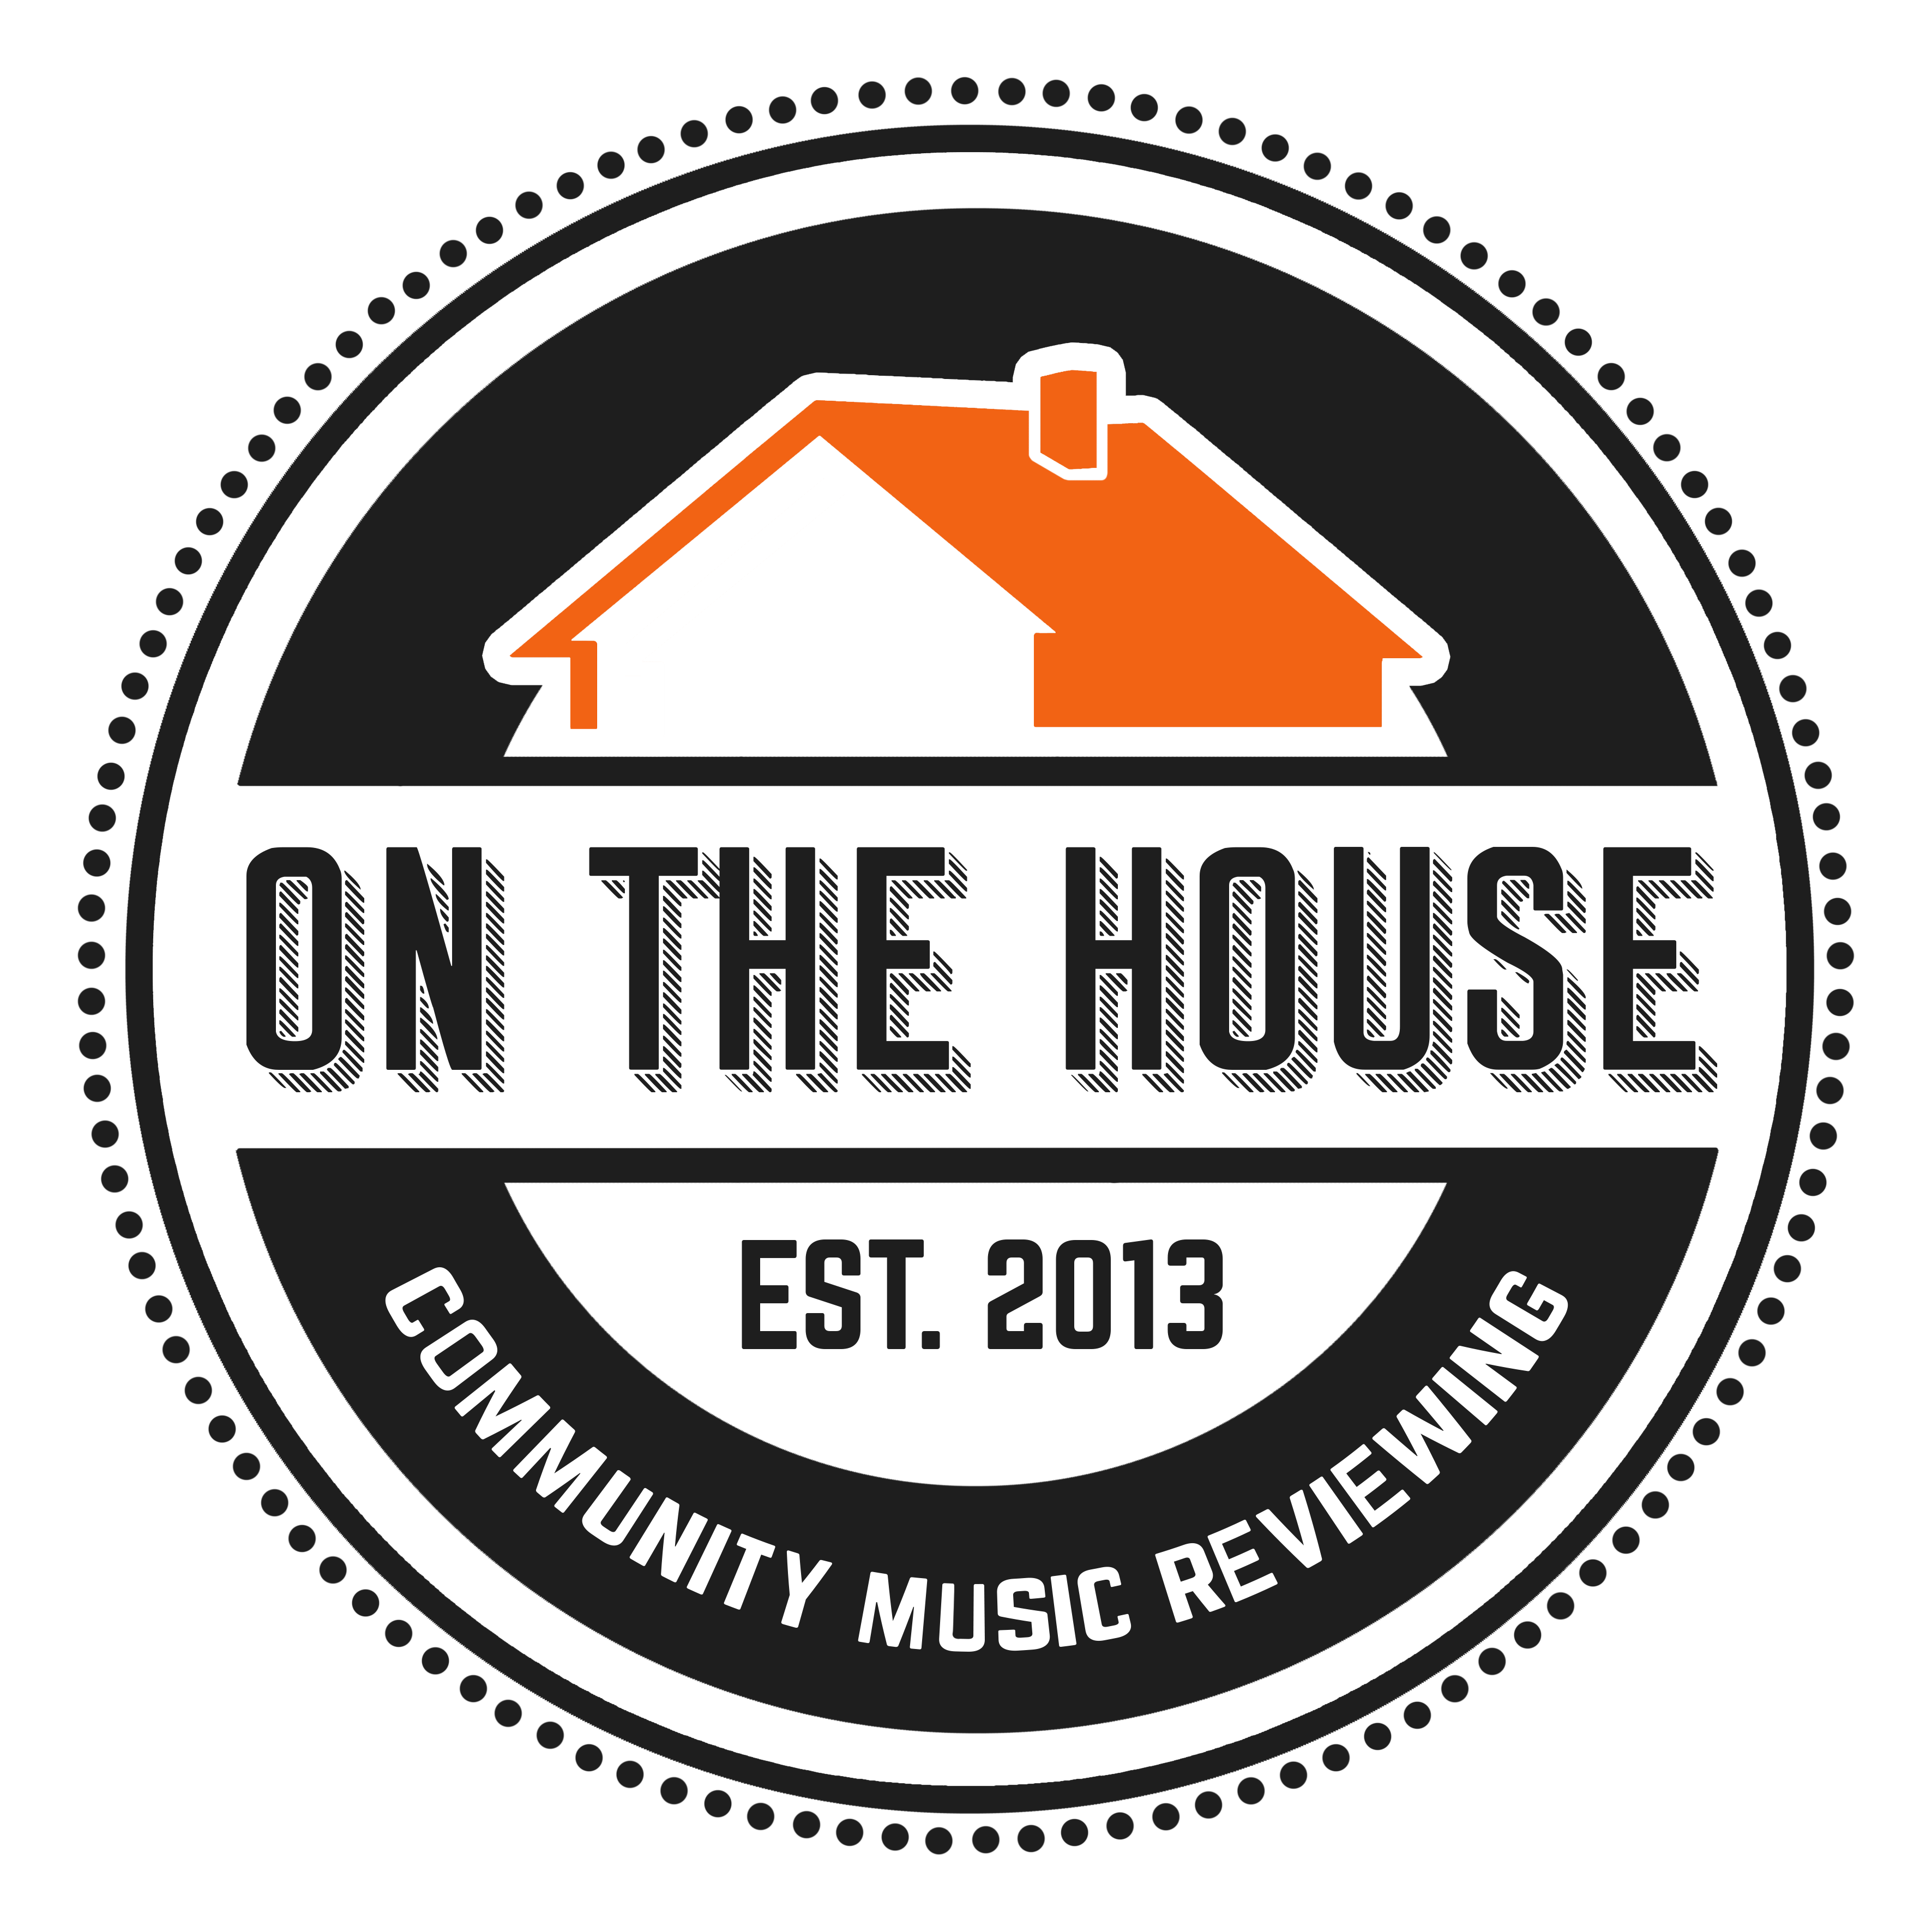 On The House Records & Music Store's account image